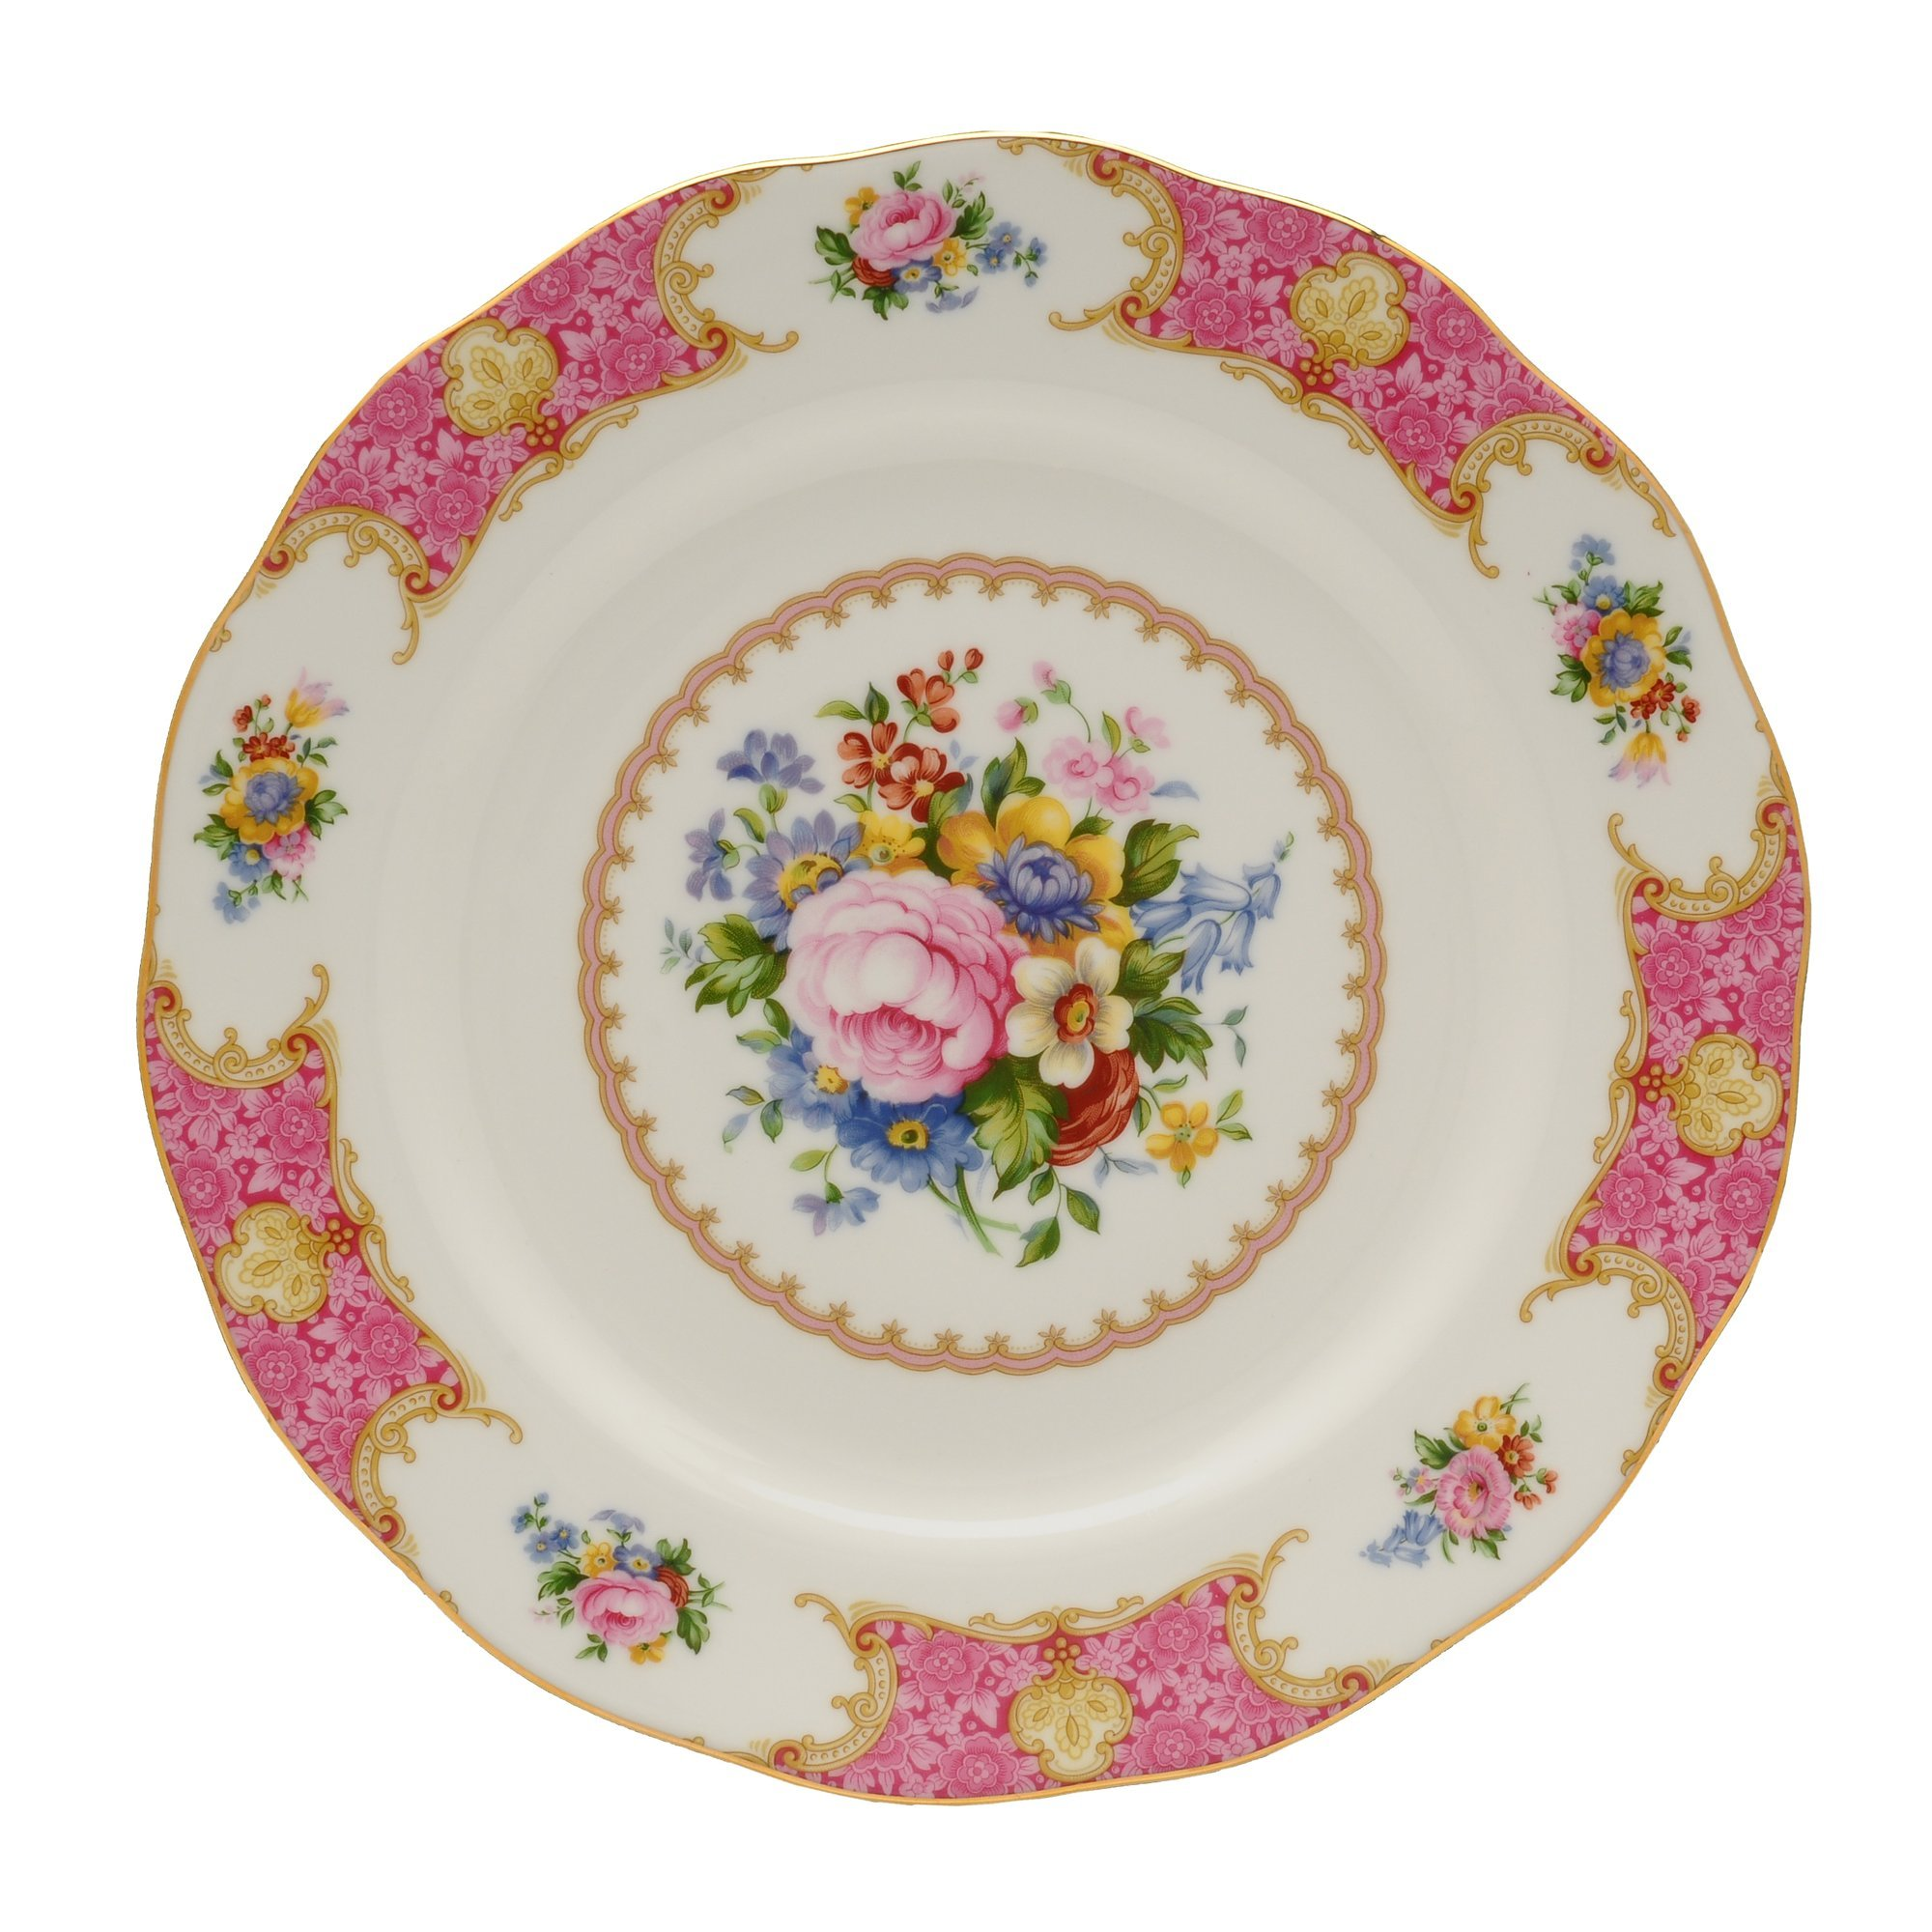 Royal Albert Lady Carlyle Dinner Plate 10-3/4-inches